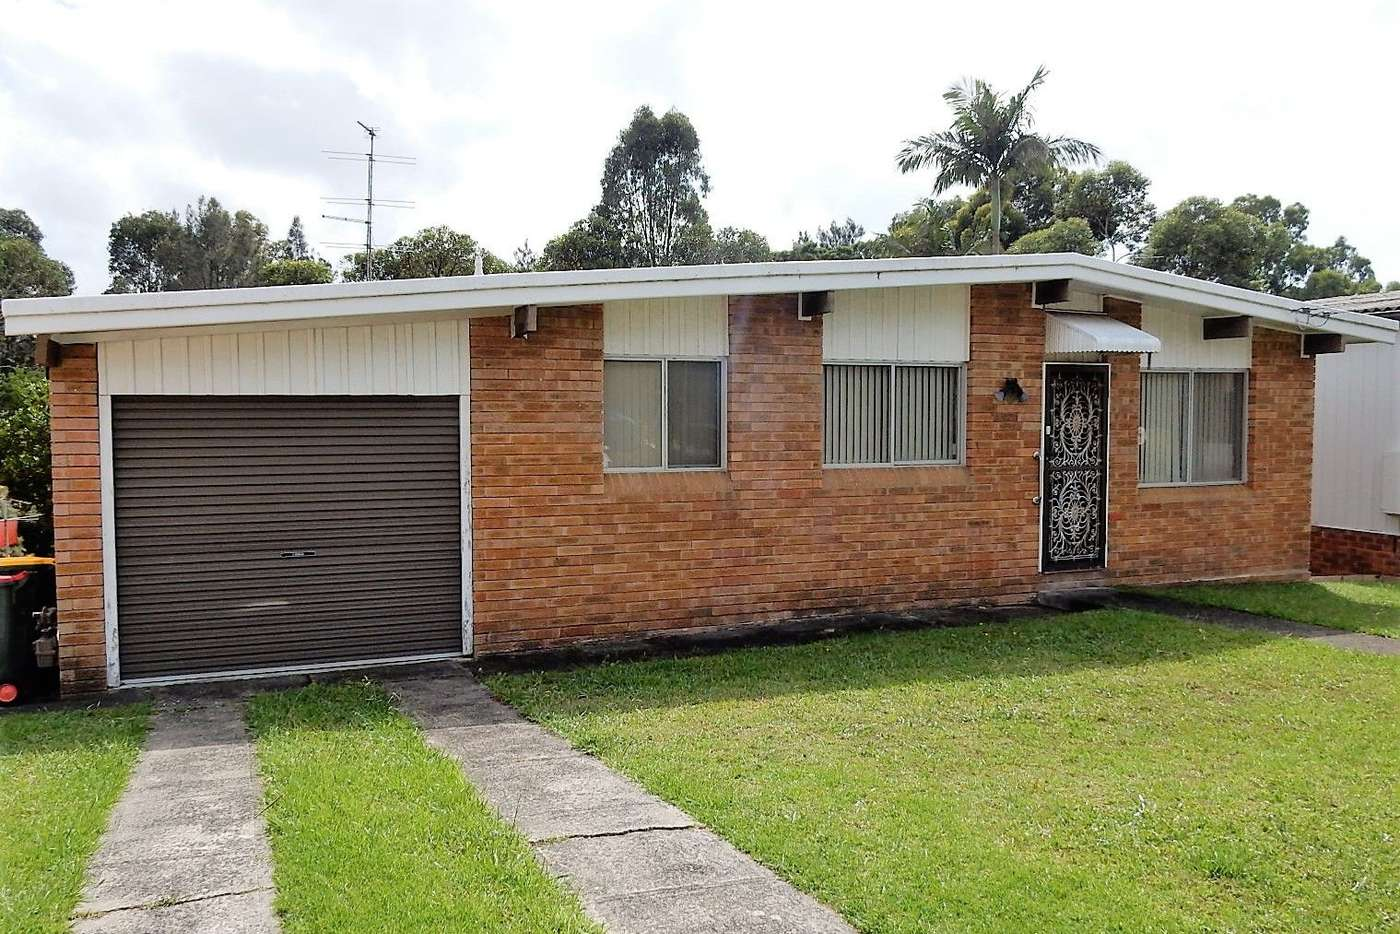 Main view of Homely house listing, 36 Hutton Avenue, Bulli NSW 2516